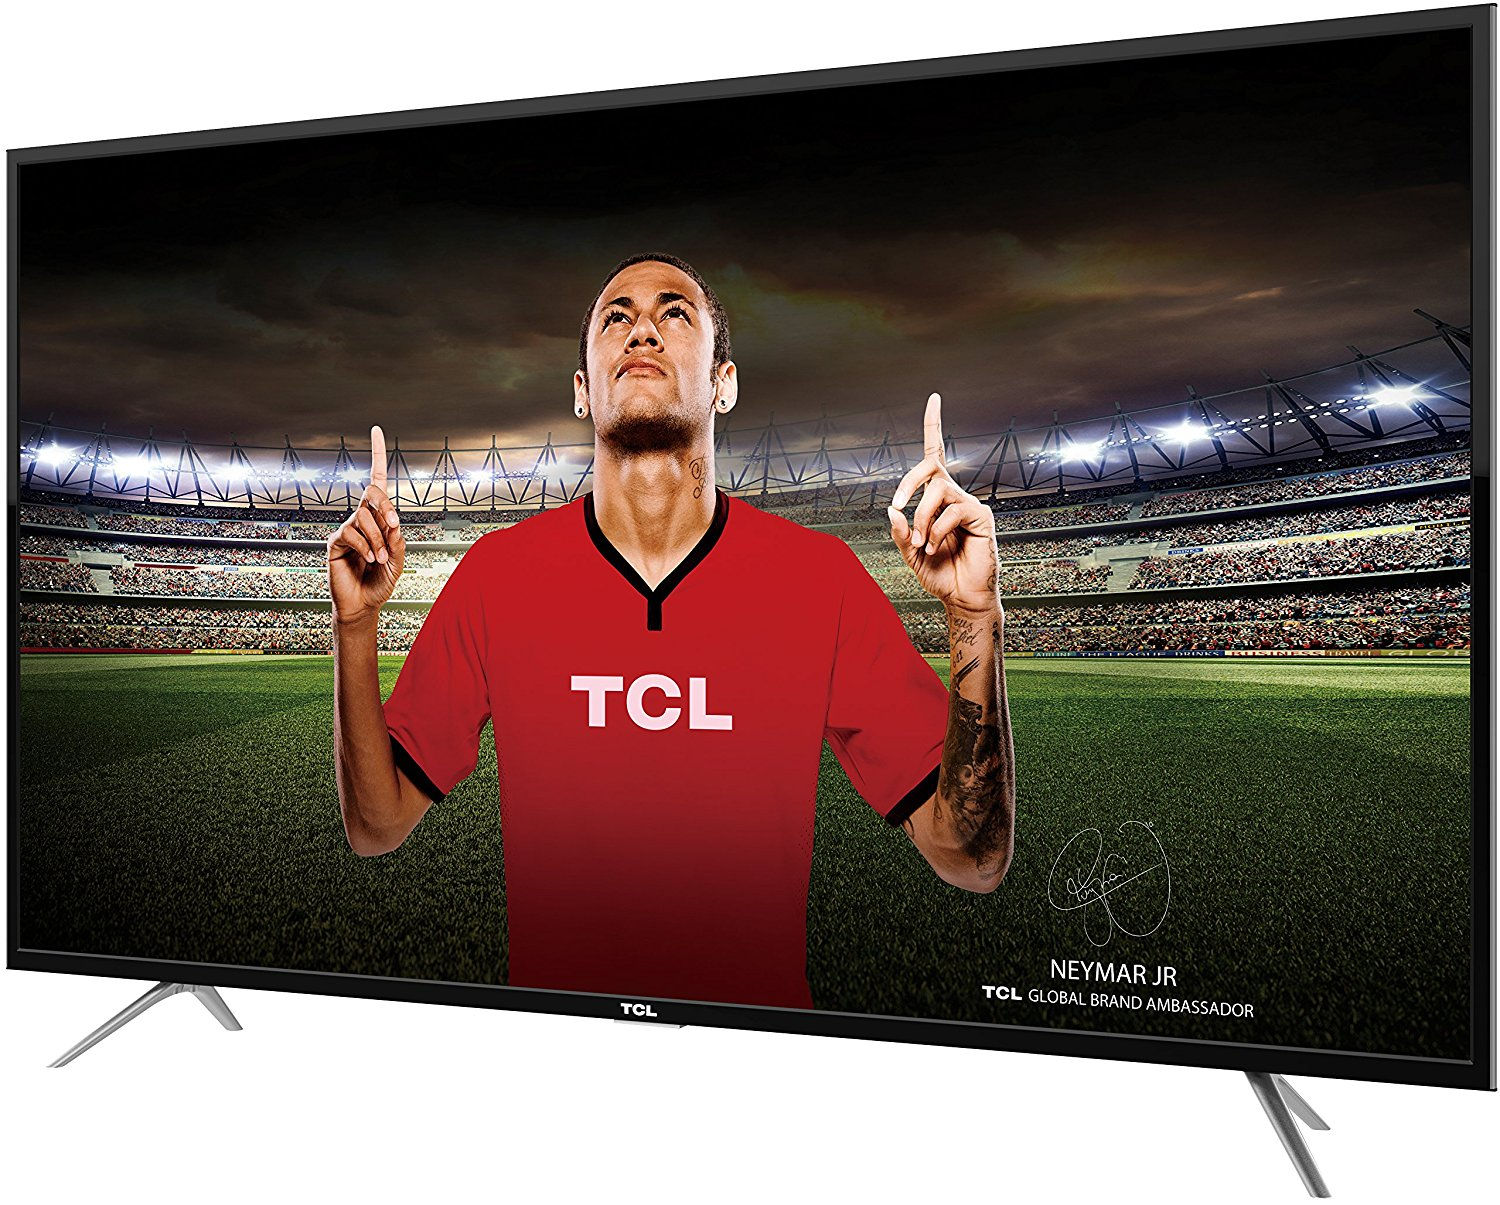 TCL 43DP608 43 Inch 4K UHD HDR TV with Freeview Play Ultra HD 4K HDR TV Hot Deals 2018